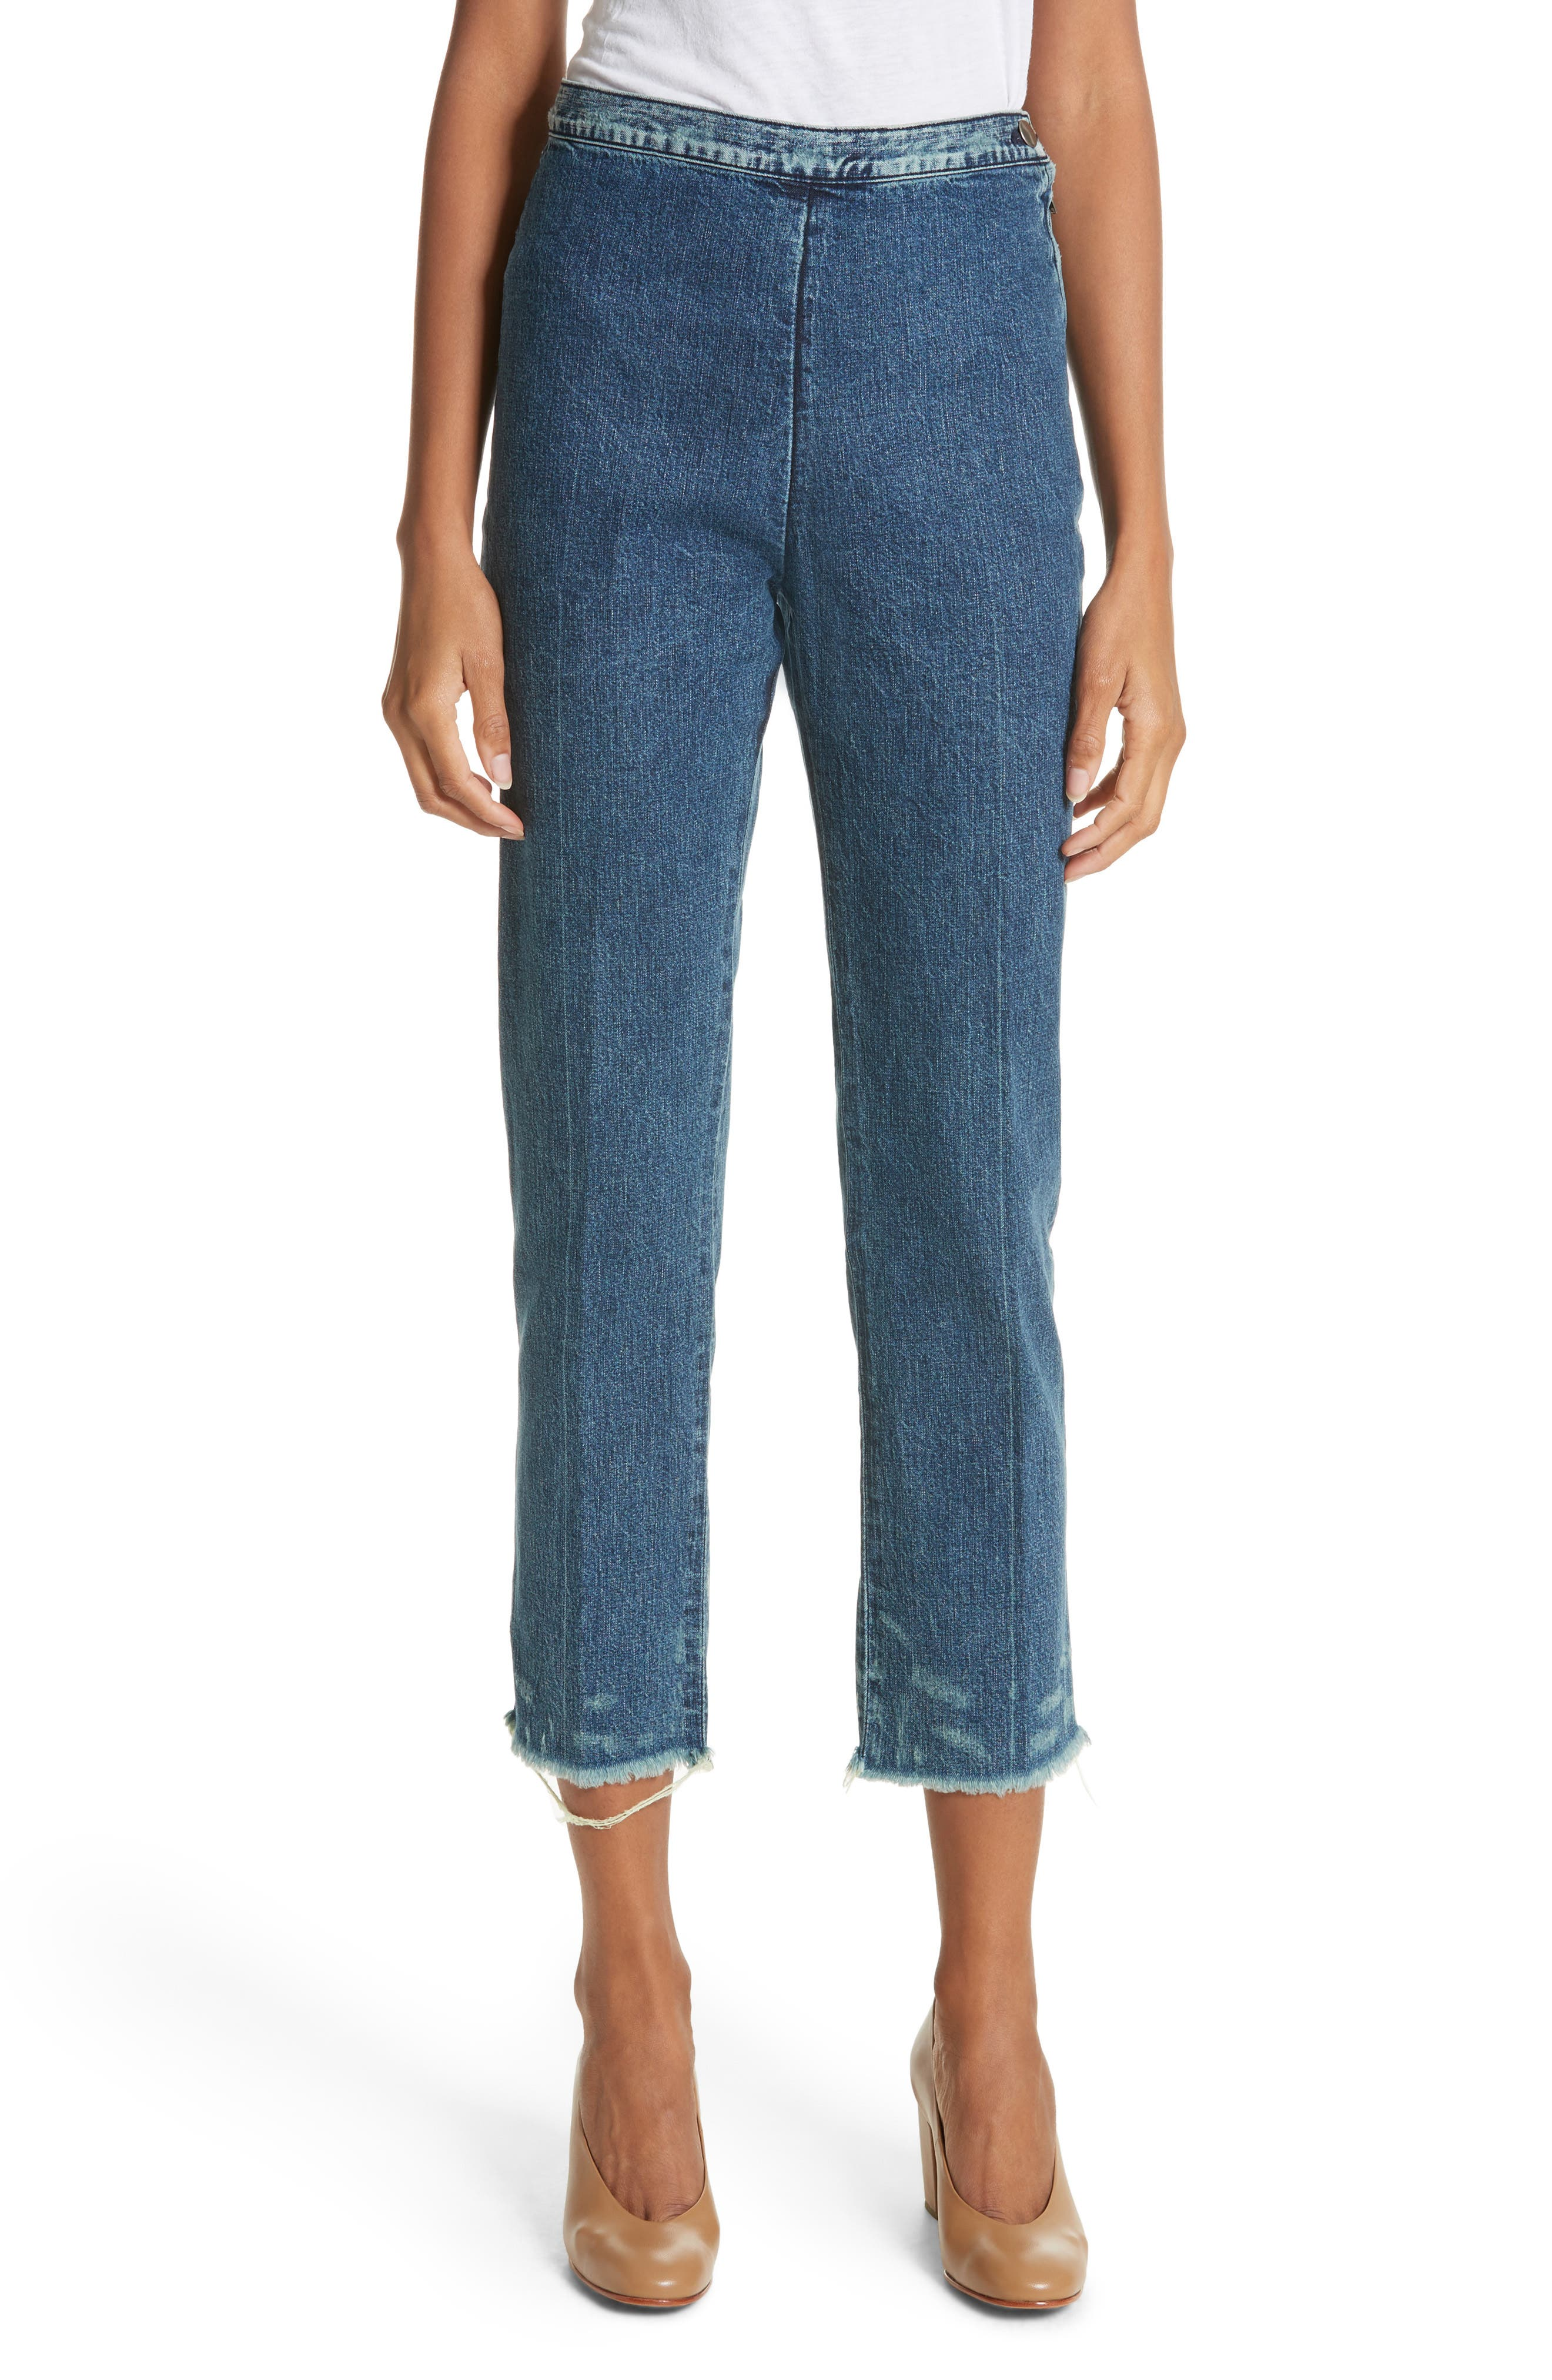 Fletcher Slim Straight Cropped Jeans,                         Main,                         color, 420